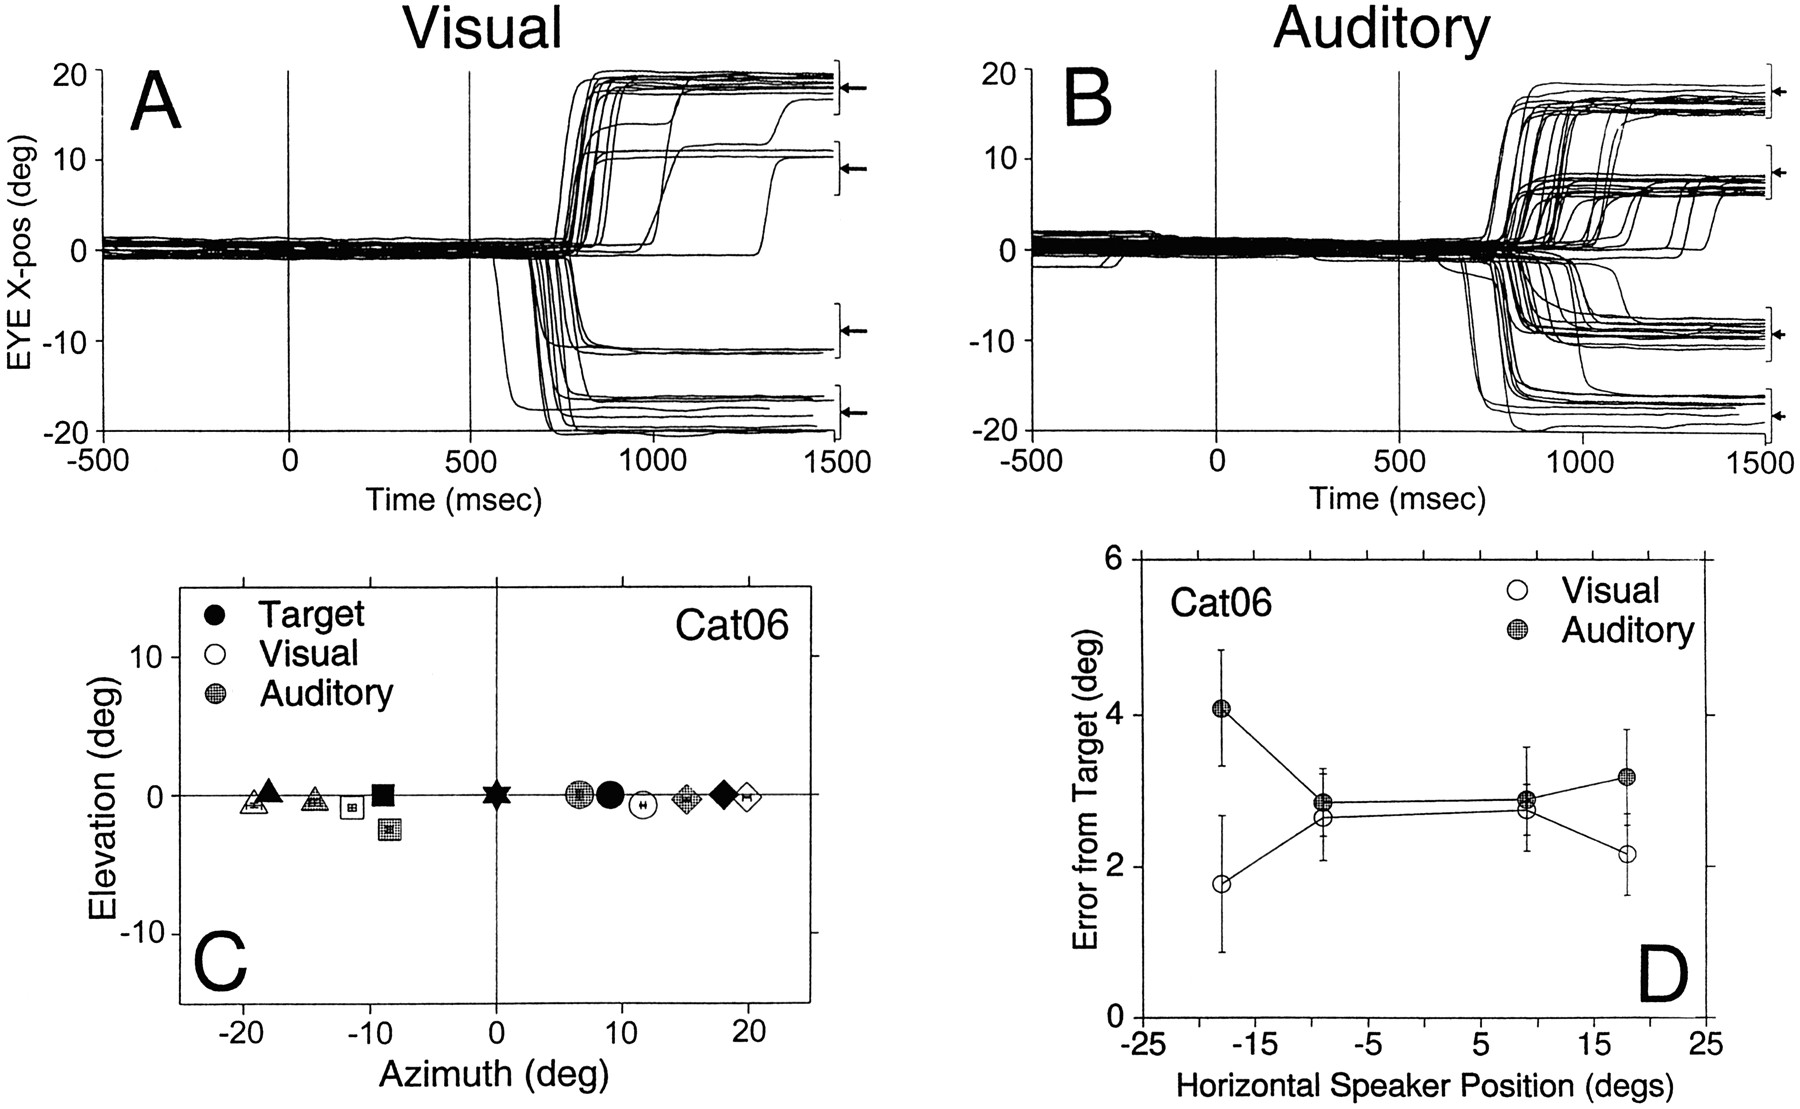 Behavioral Studies Of Sound Localization In The Cat Journal 8 Bit Up To 65 Se All Outputs Short Circuit Download Figure Open New Tab